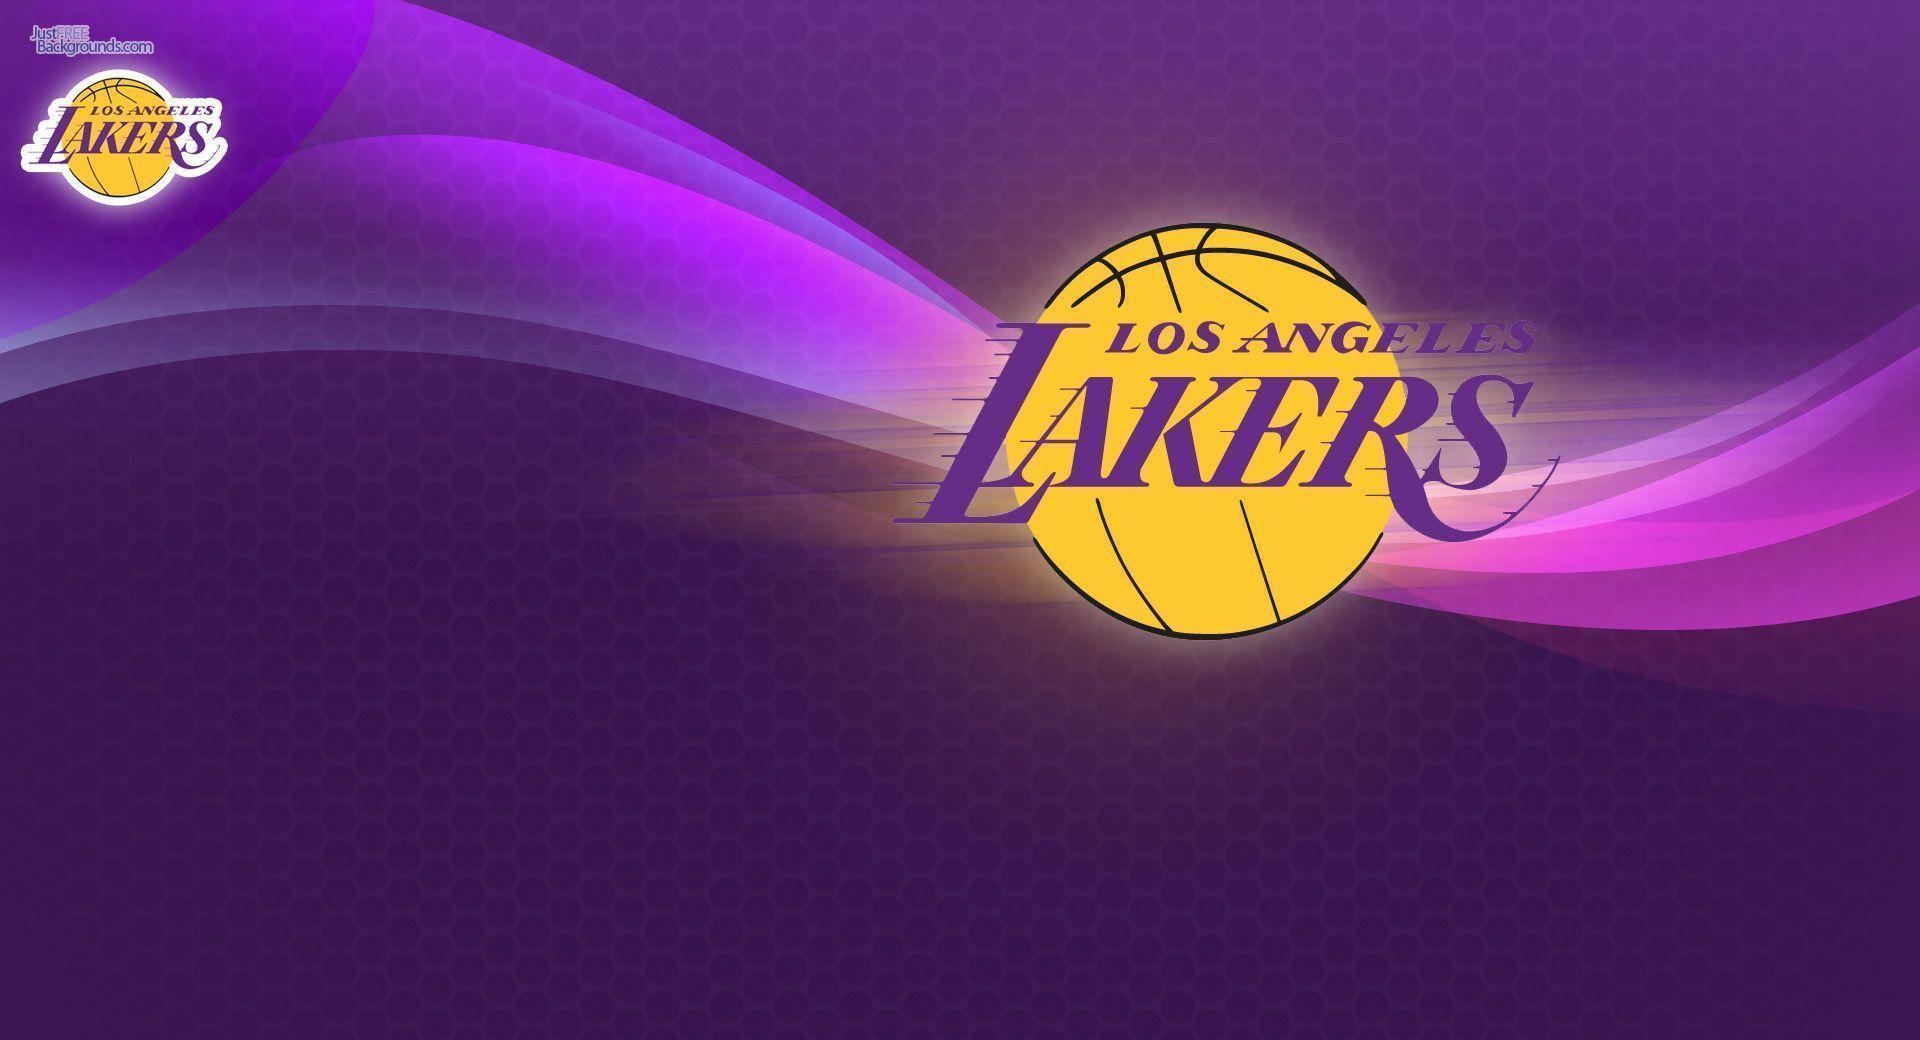 lakers logo wallpapers - photo #14